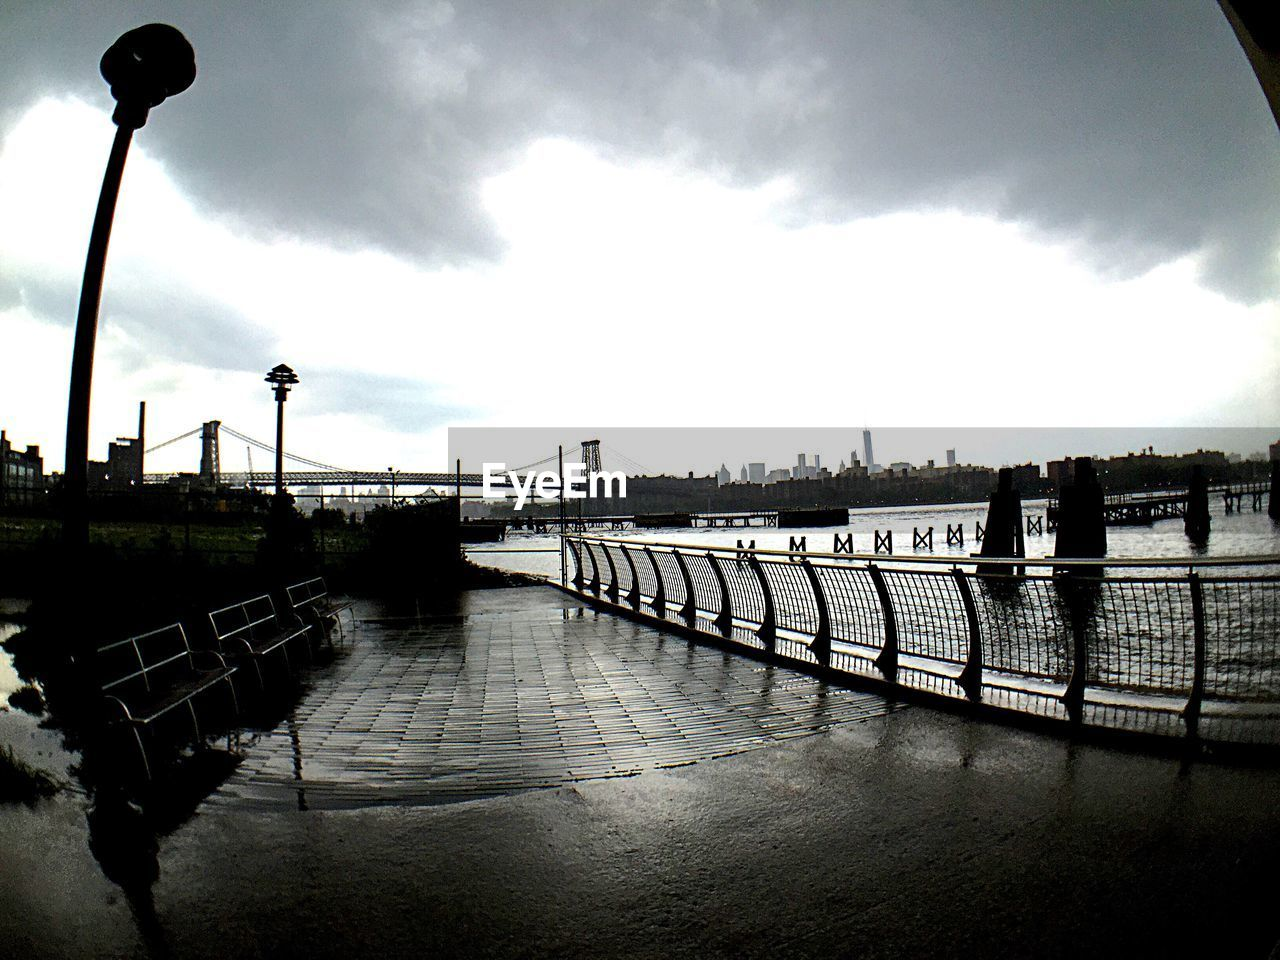 sky, built structure, cloud - sky, railing, architecture, river, water, day, building exterior, outdoors, street light, no people, city, nature